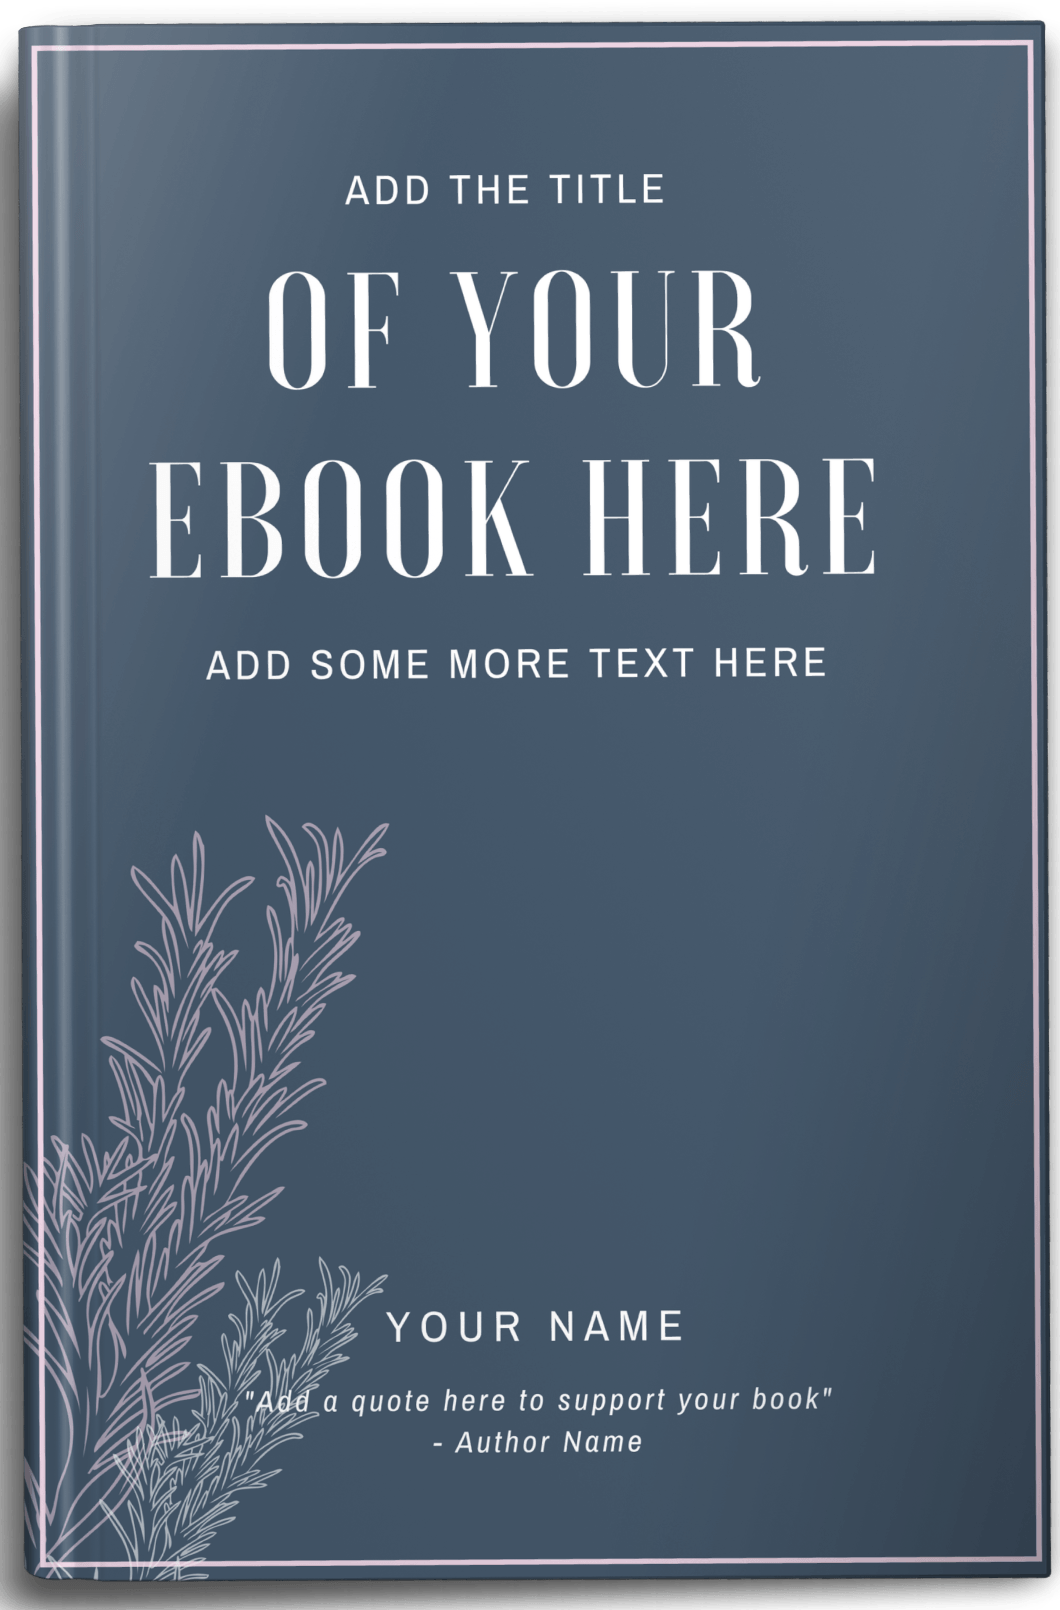 eBook Mockup Example